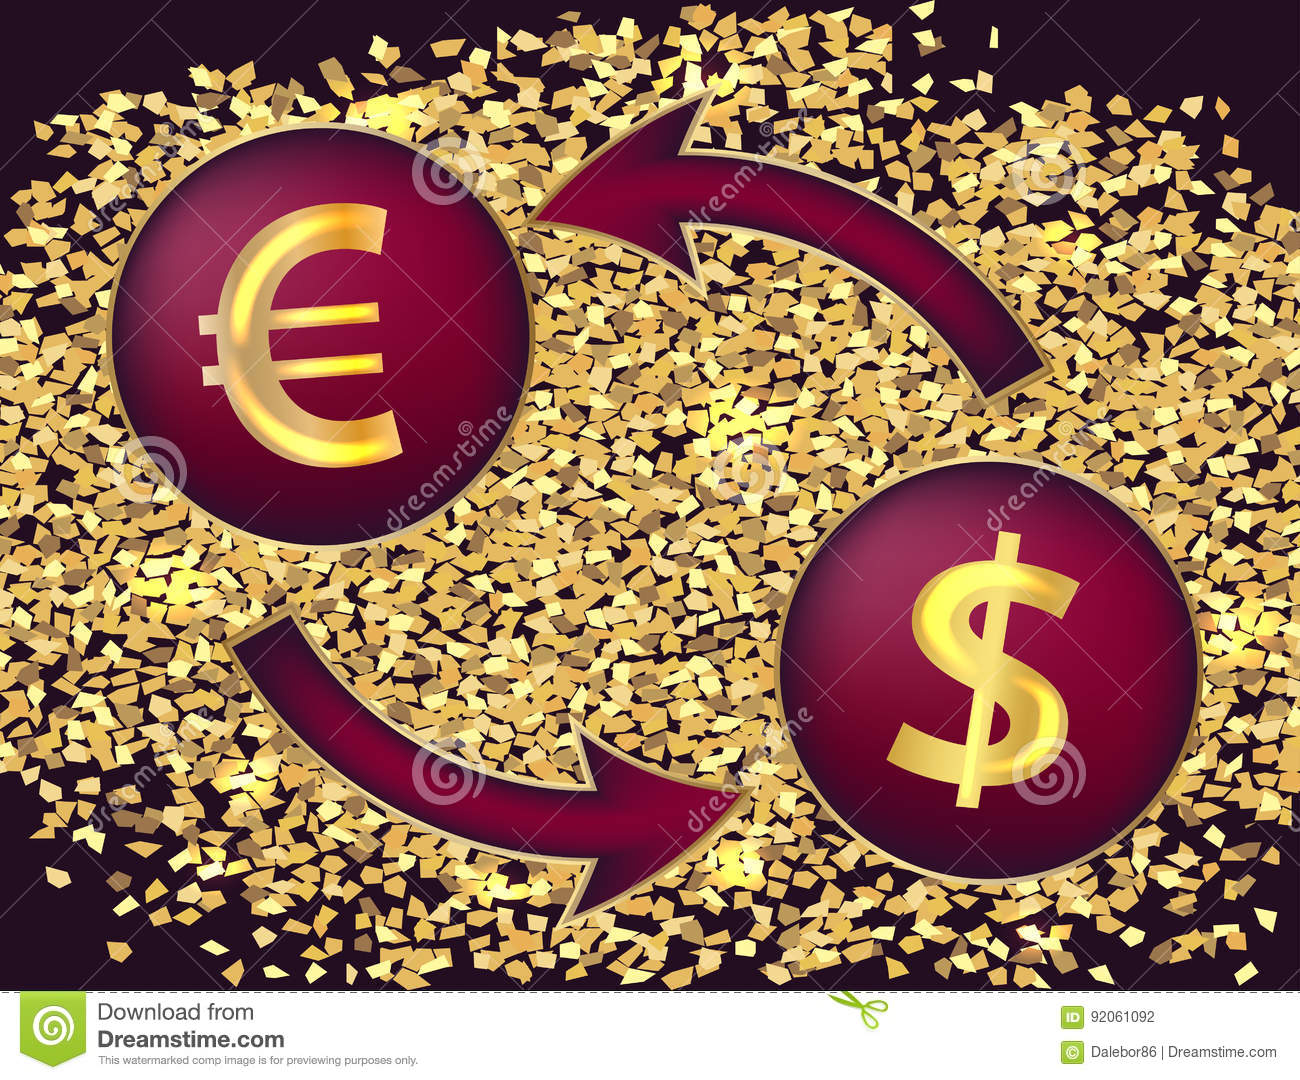 Currency exchangembols of the dollar and the euro stock vector currency exchangembols of the dollar and the euro biocorpaavc Images